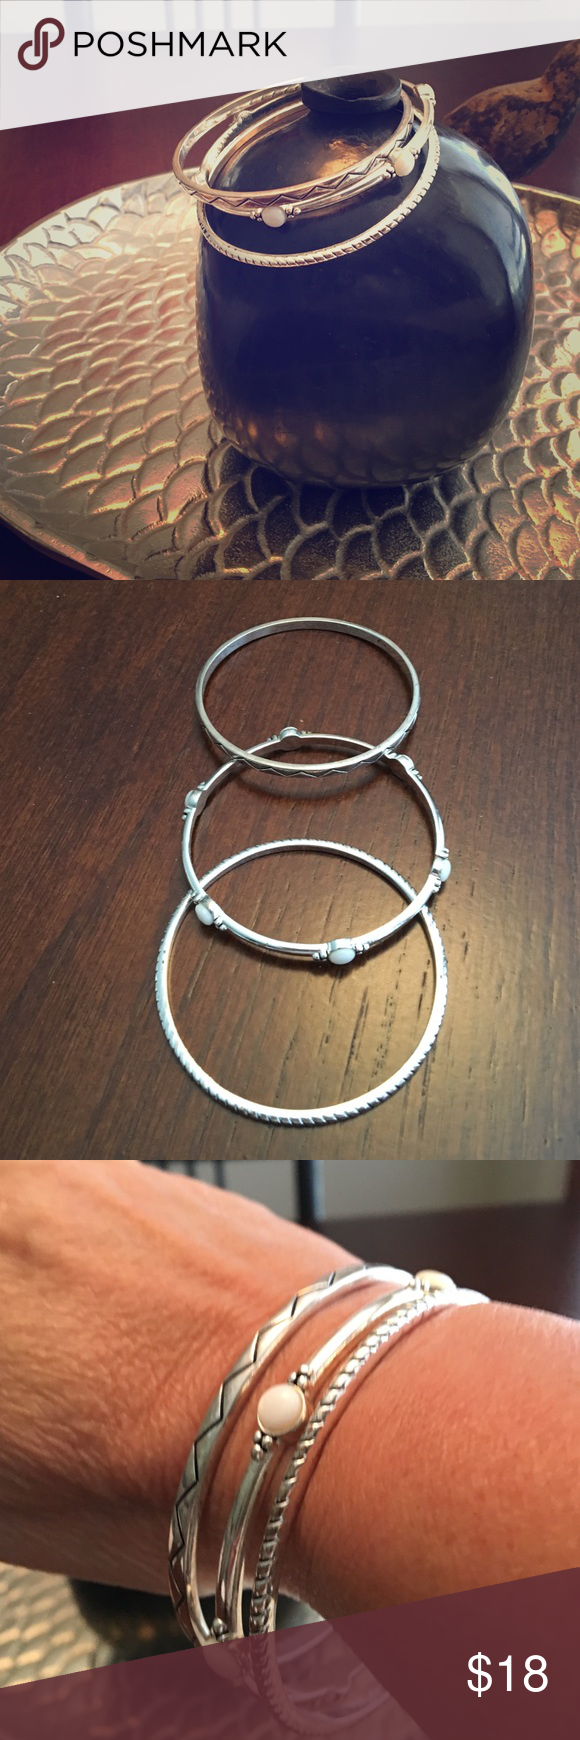 """🕶 """". Premier """"set of 3 Bracelets  🕶 These cute bracelets are from Premier designs.white stones on middle bracelet. Gently used. Not sterling silver. Silver plated .. Premier Designs Jewelry Bracelets"""